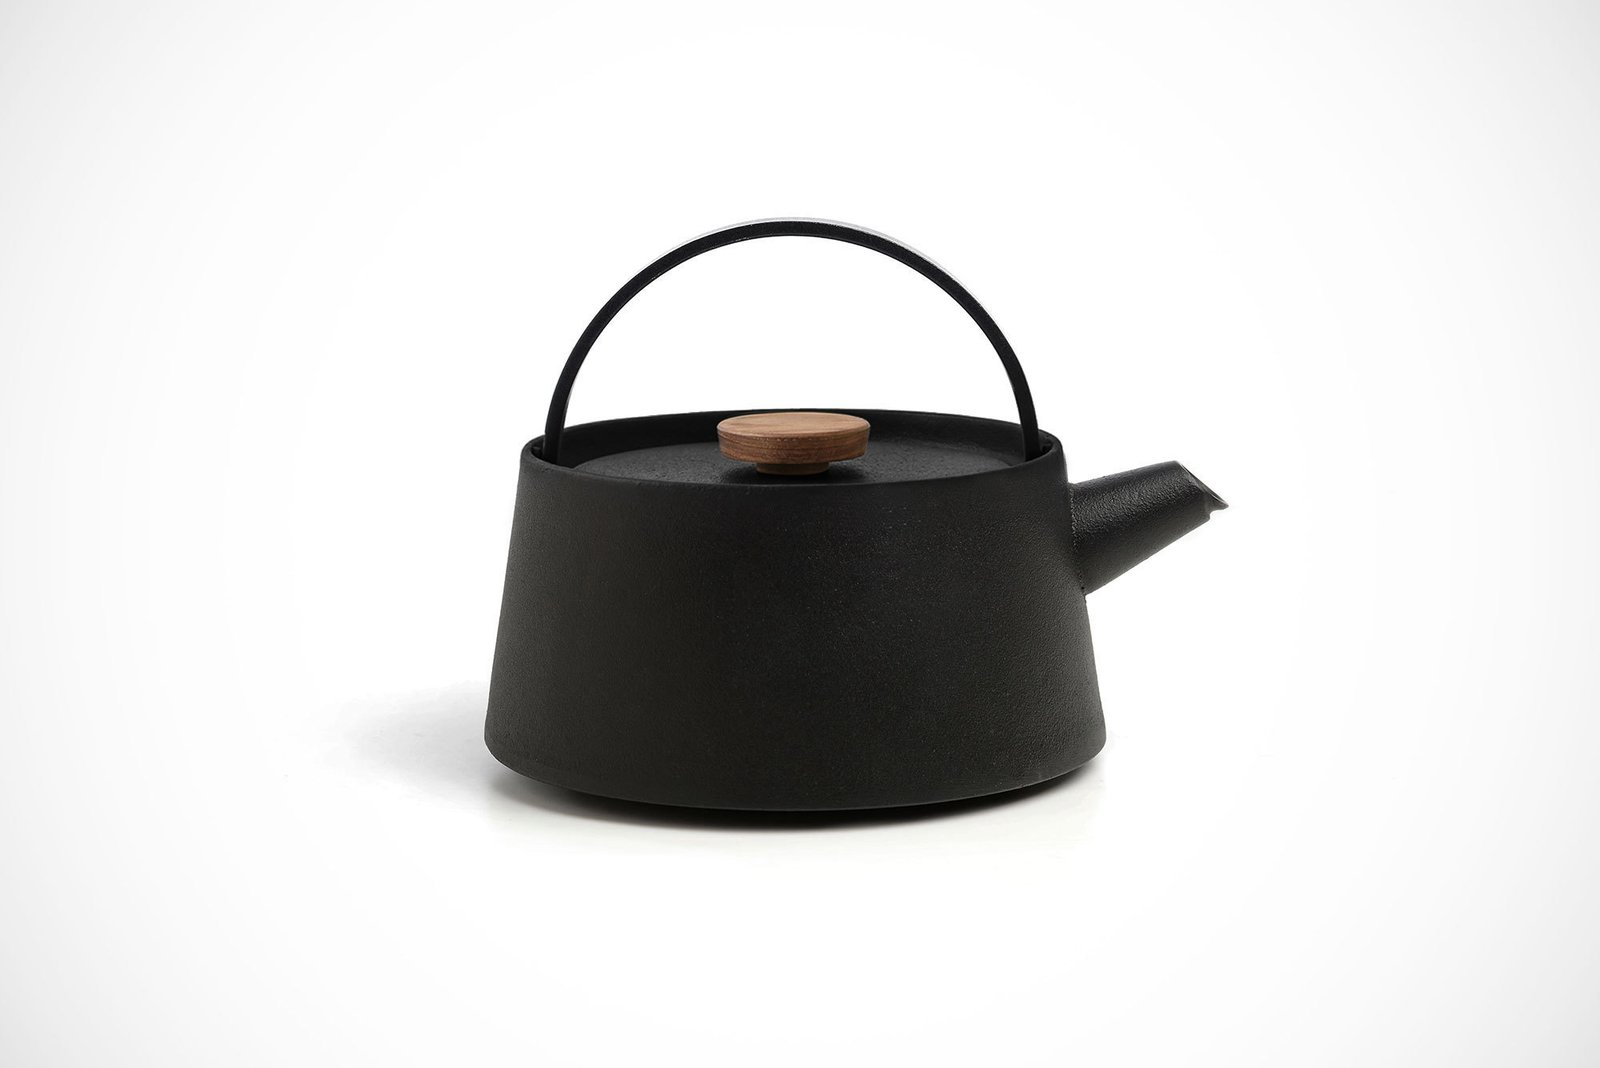 Photo 1 of 1 in Nambu Cast Iron Kettle, 2016 Edition